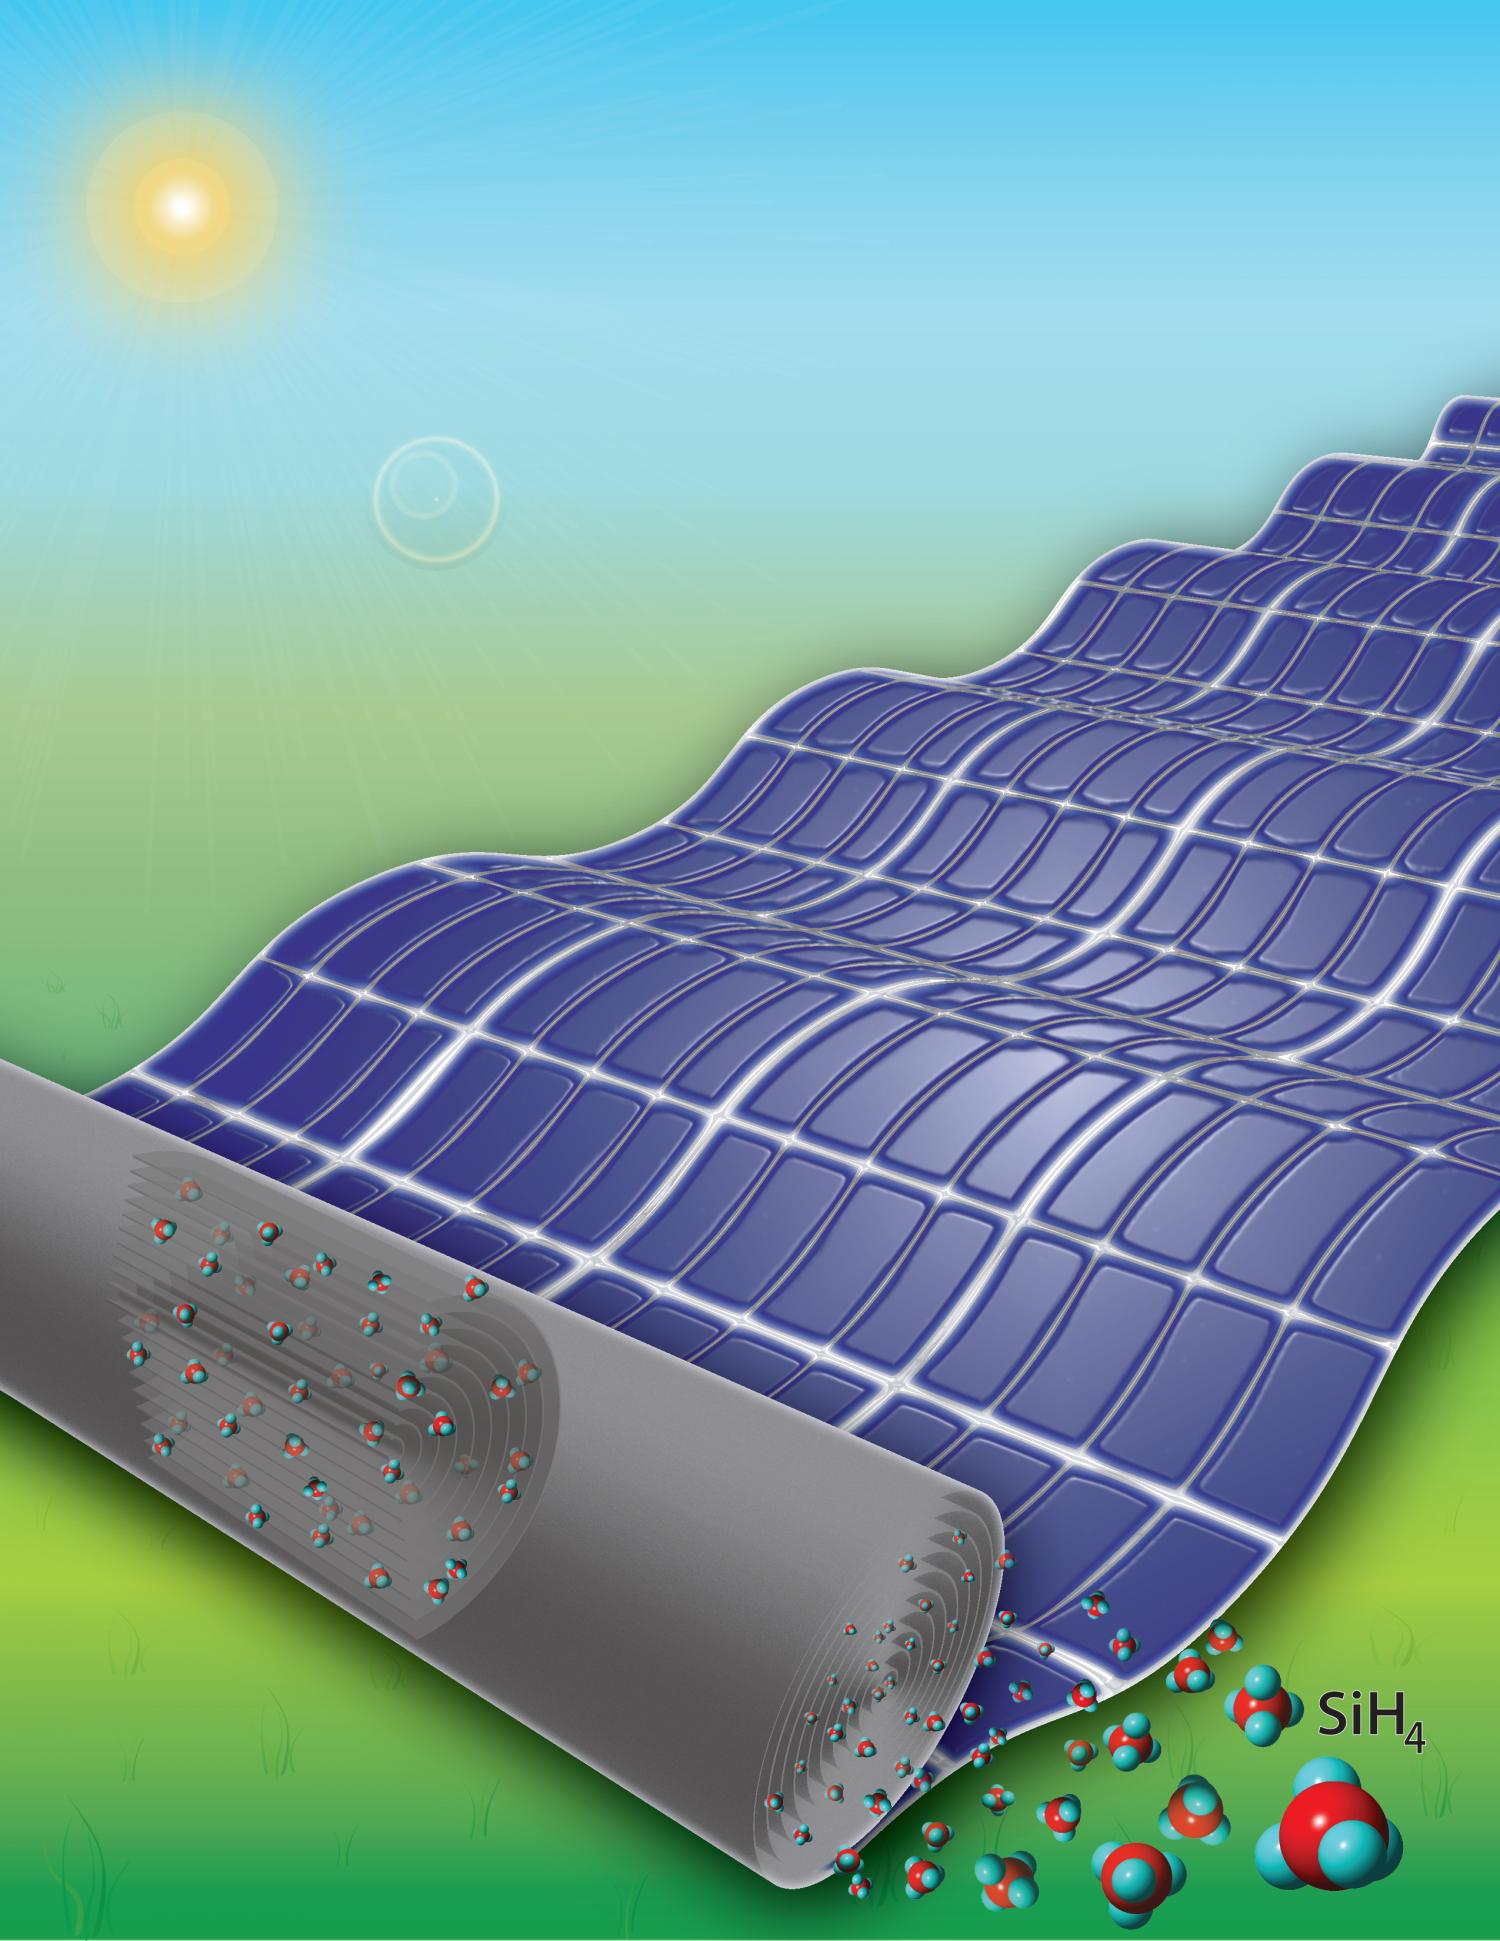 New Technique Could Make Large Flexible Solar Panels More